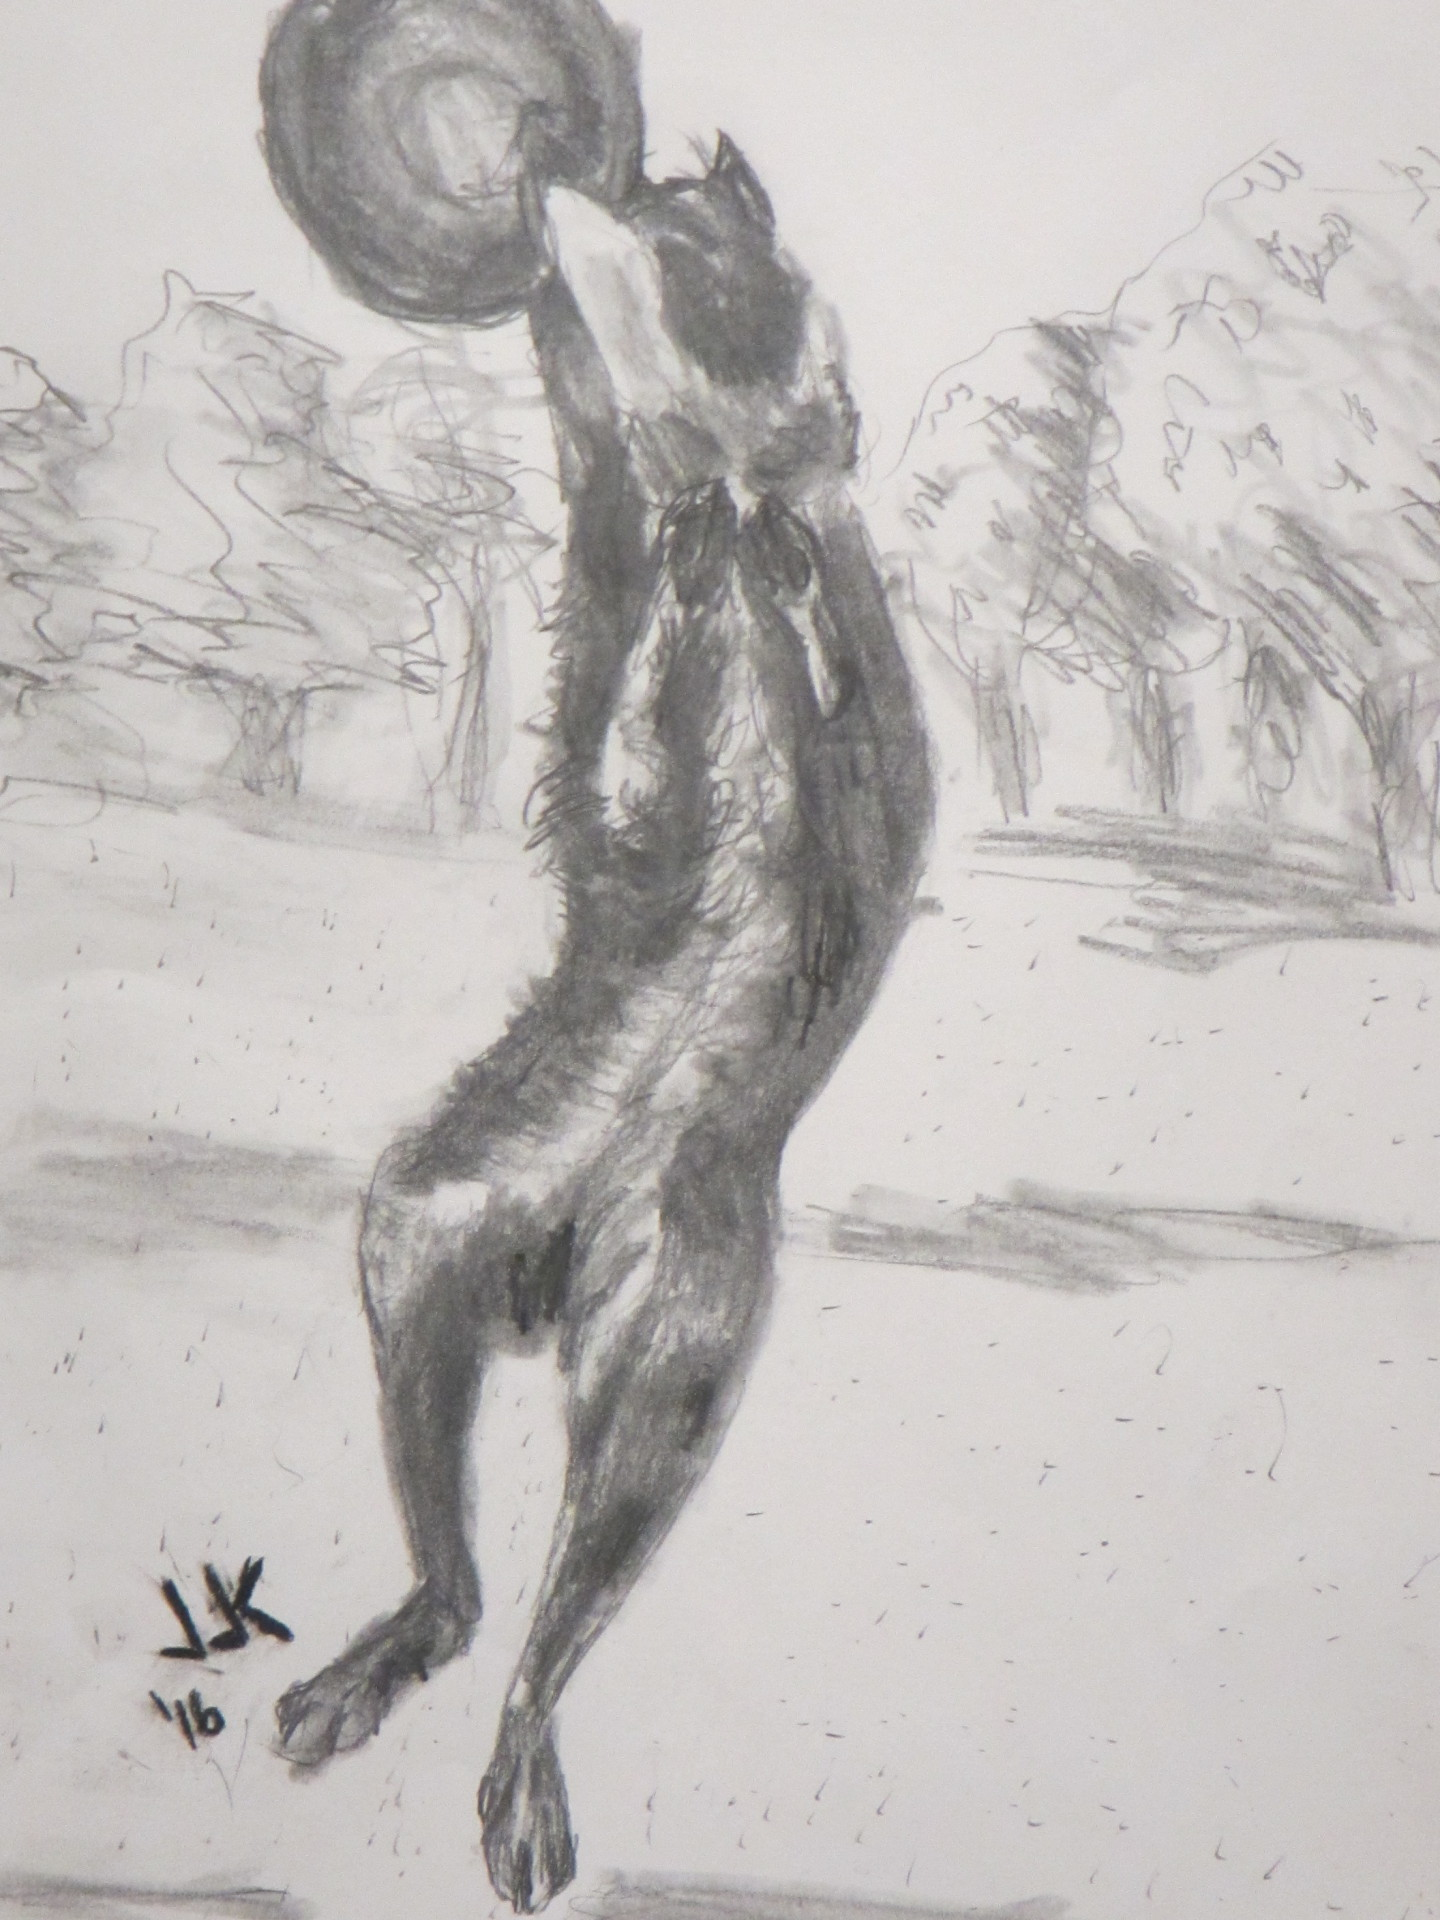 Pencil drawing of a border collie jumping to catch a frisbee.